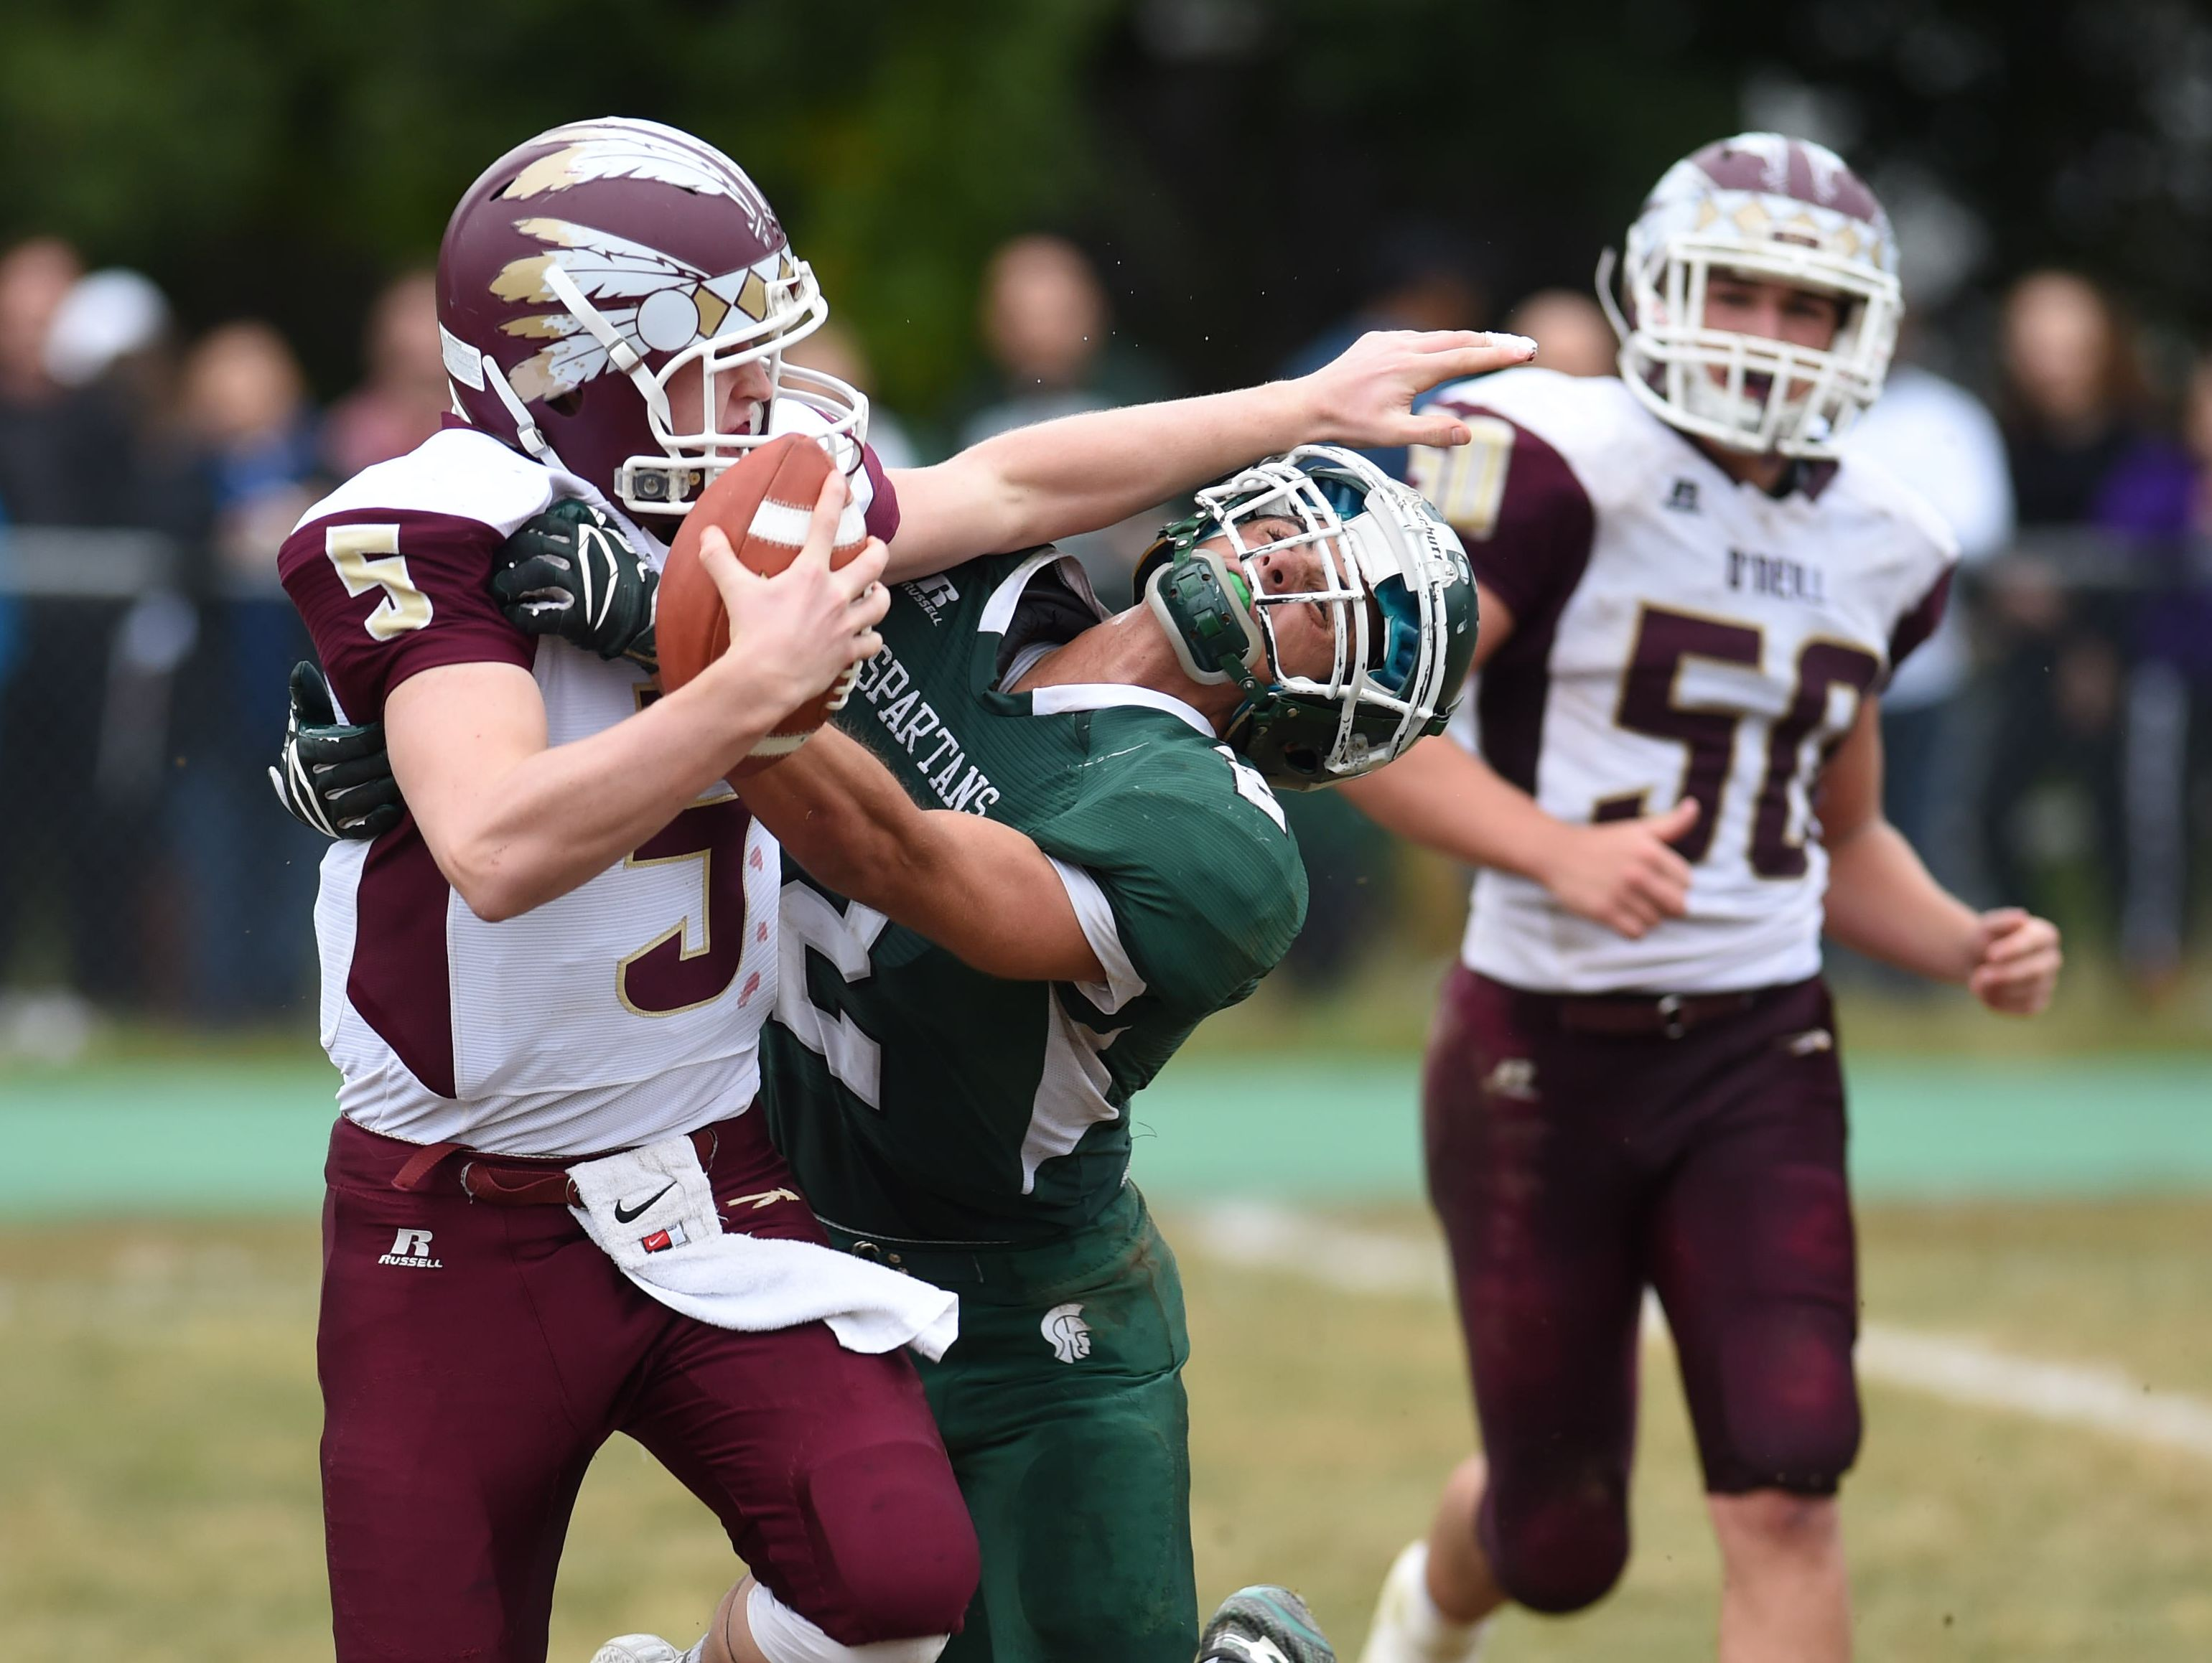 Spackenkill's Joseph Arcuri attempts to tackle O'Neill's, Luke Kilner during Saturday's game at Spackenkill.